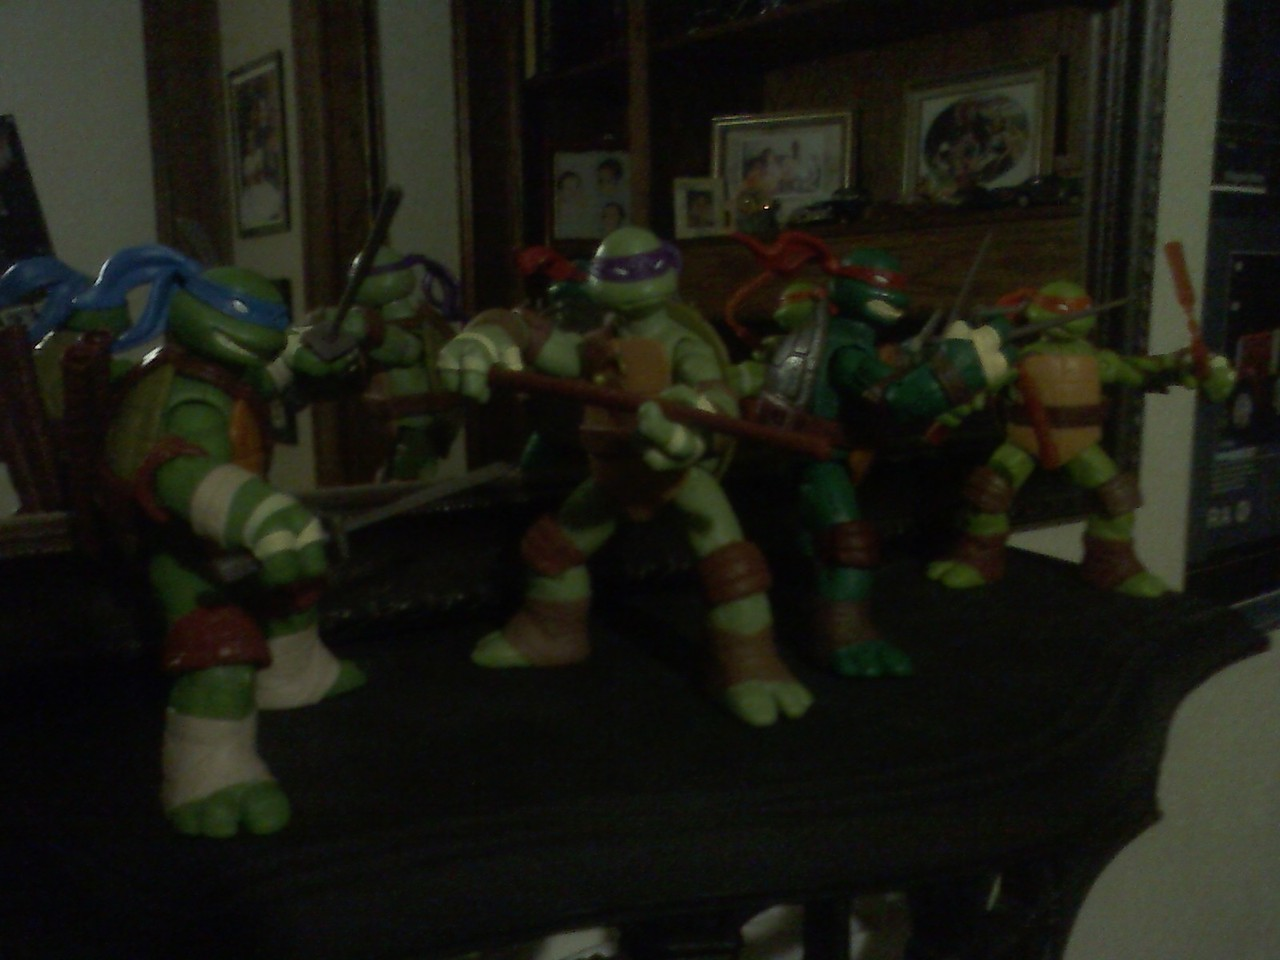 i just had to have all the fucking turtles too.